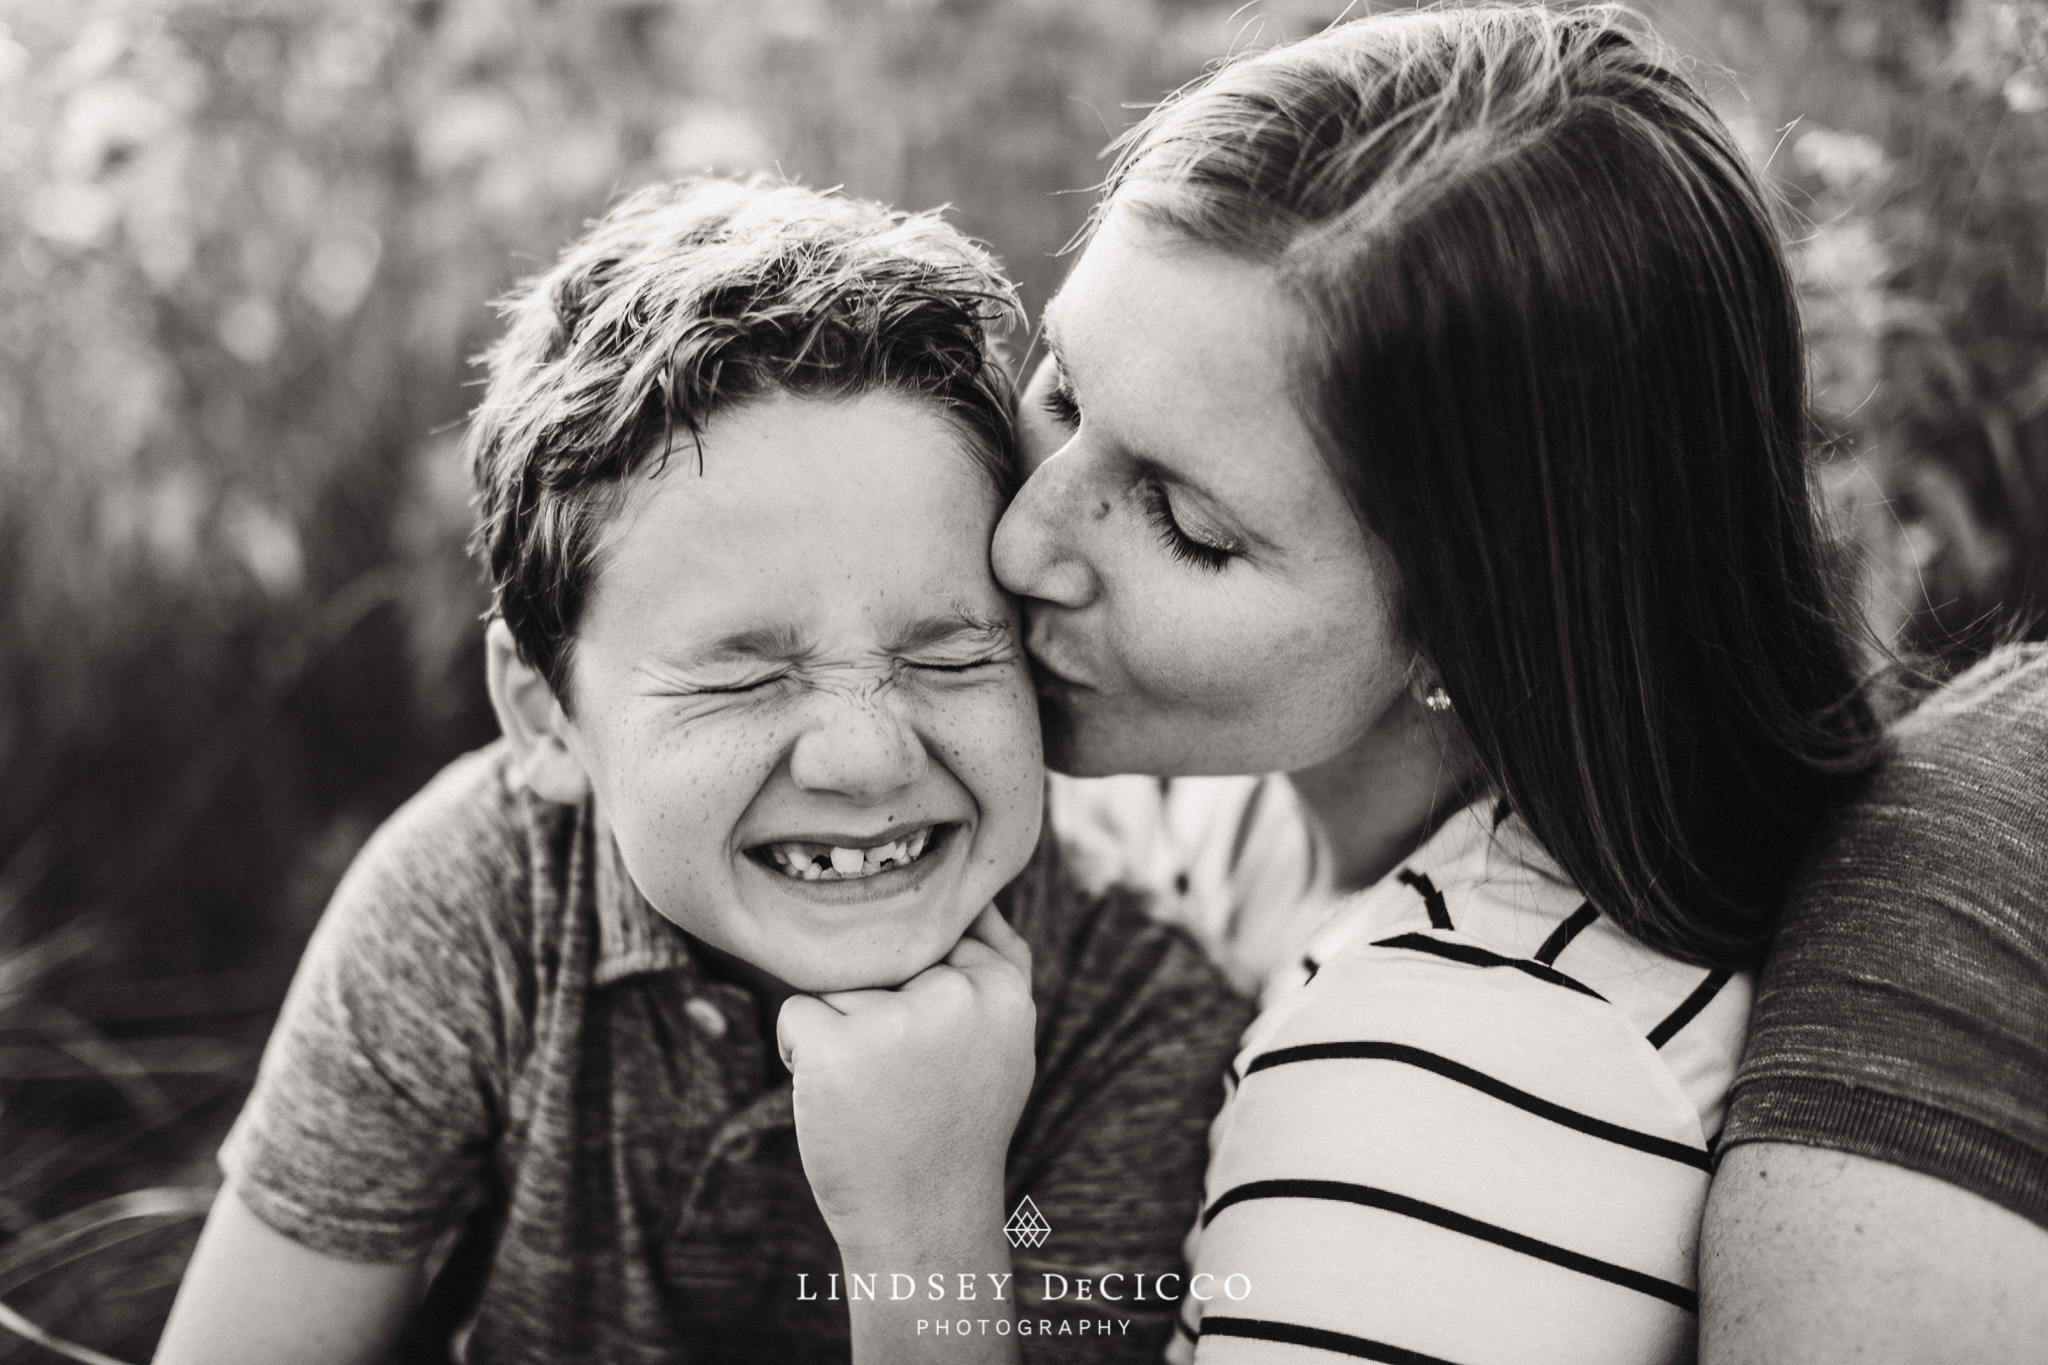 mom and son with freckles not enjoying kiss, black and white